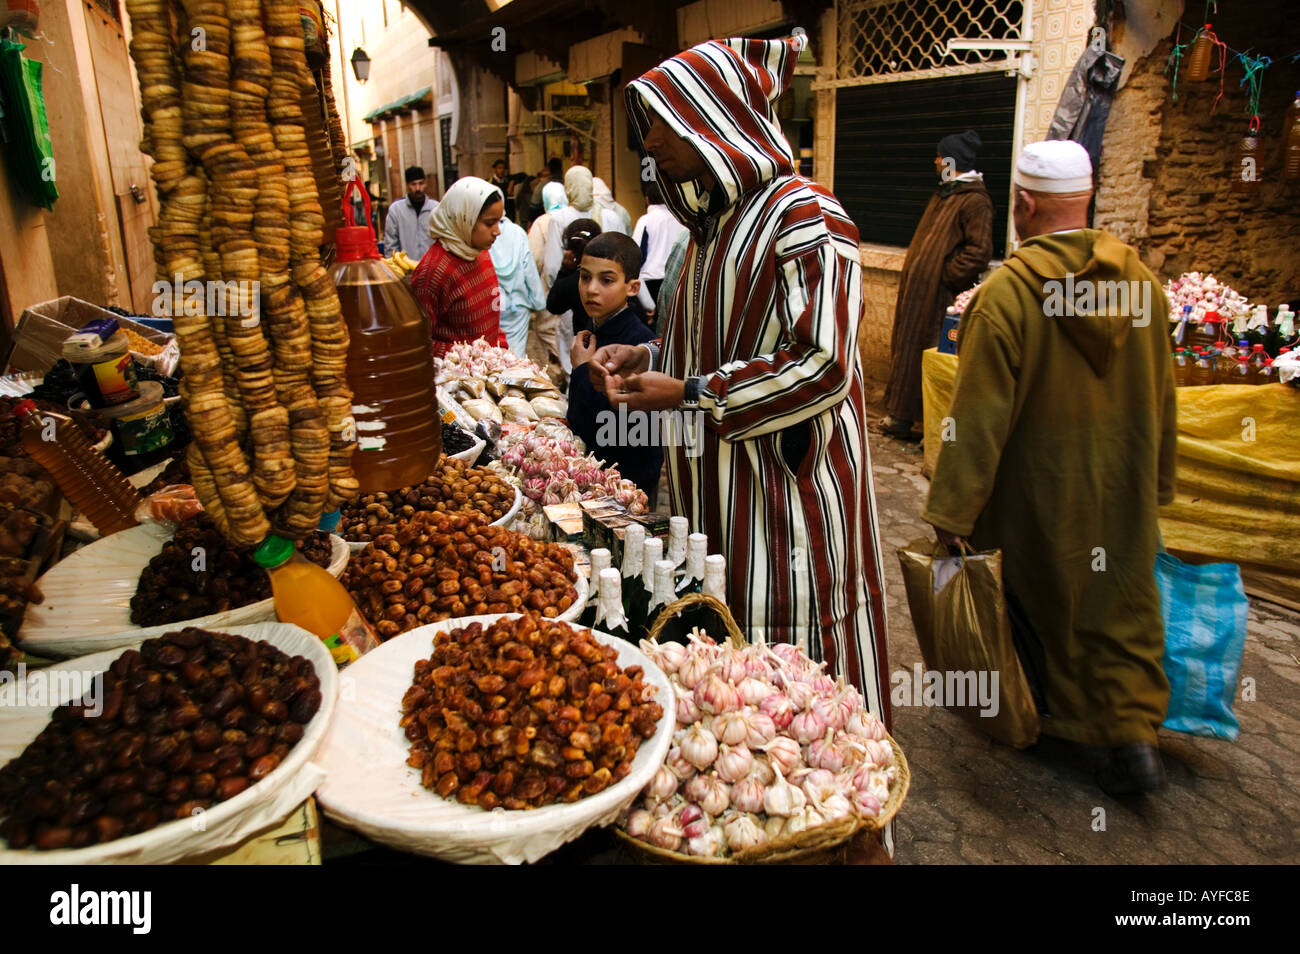 Muslim man dressed in traditional Jellaba shops in the colourful